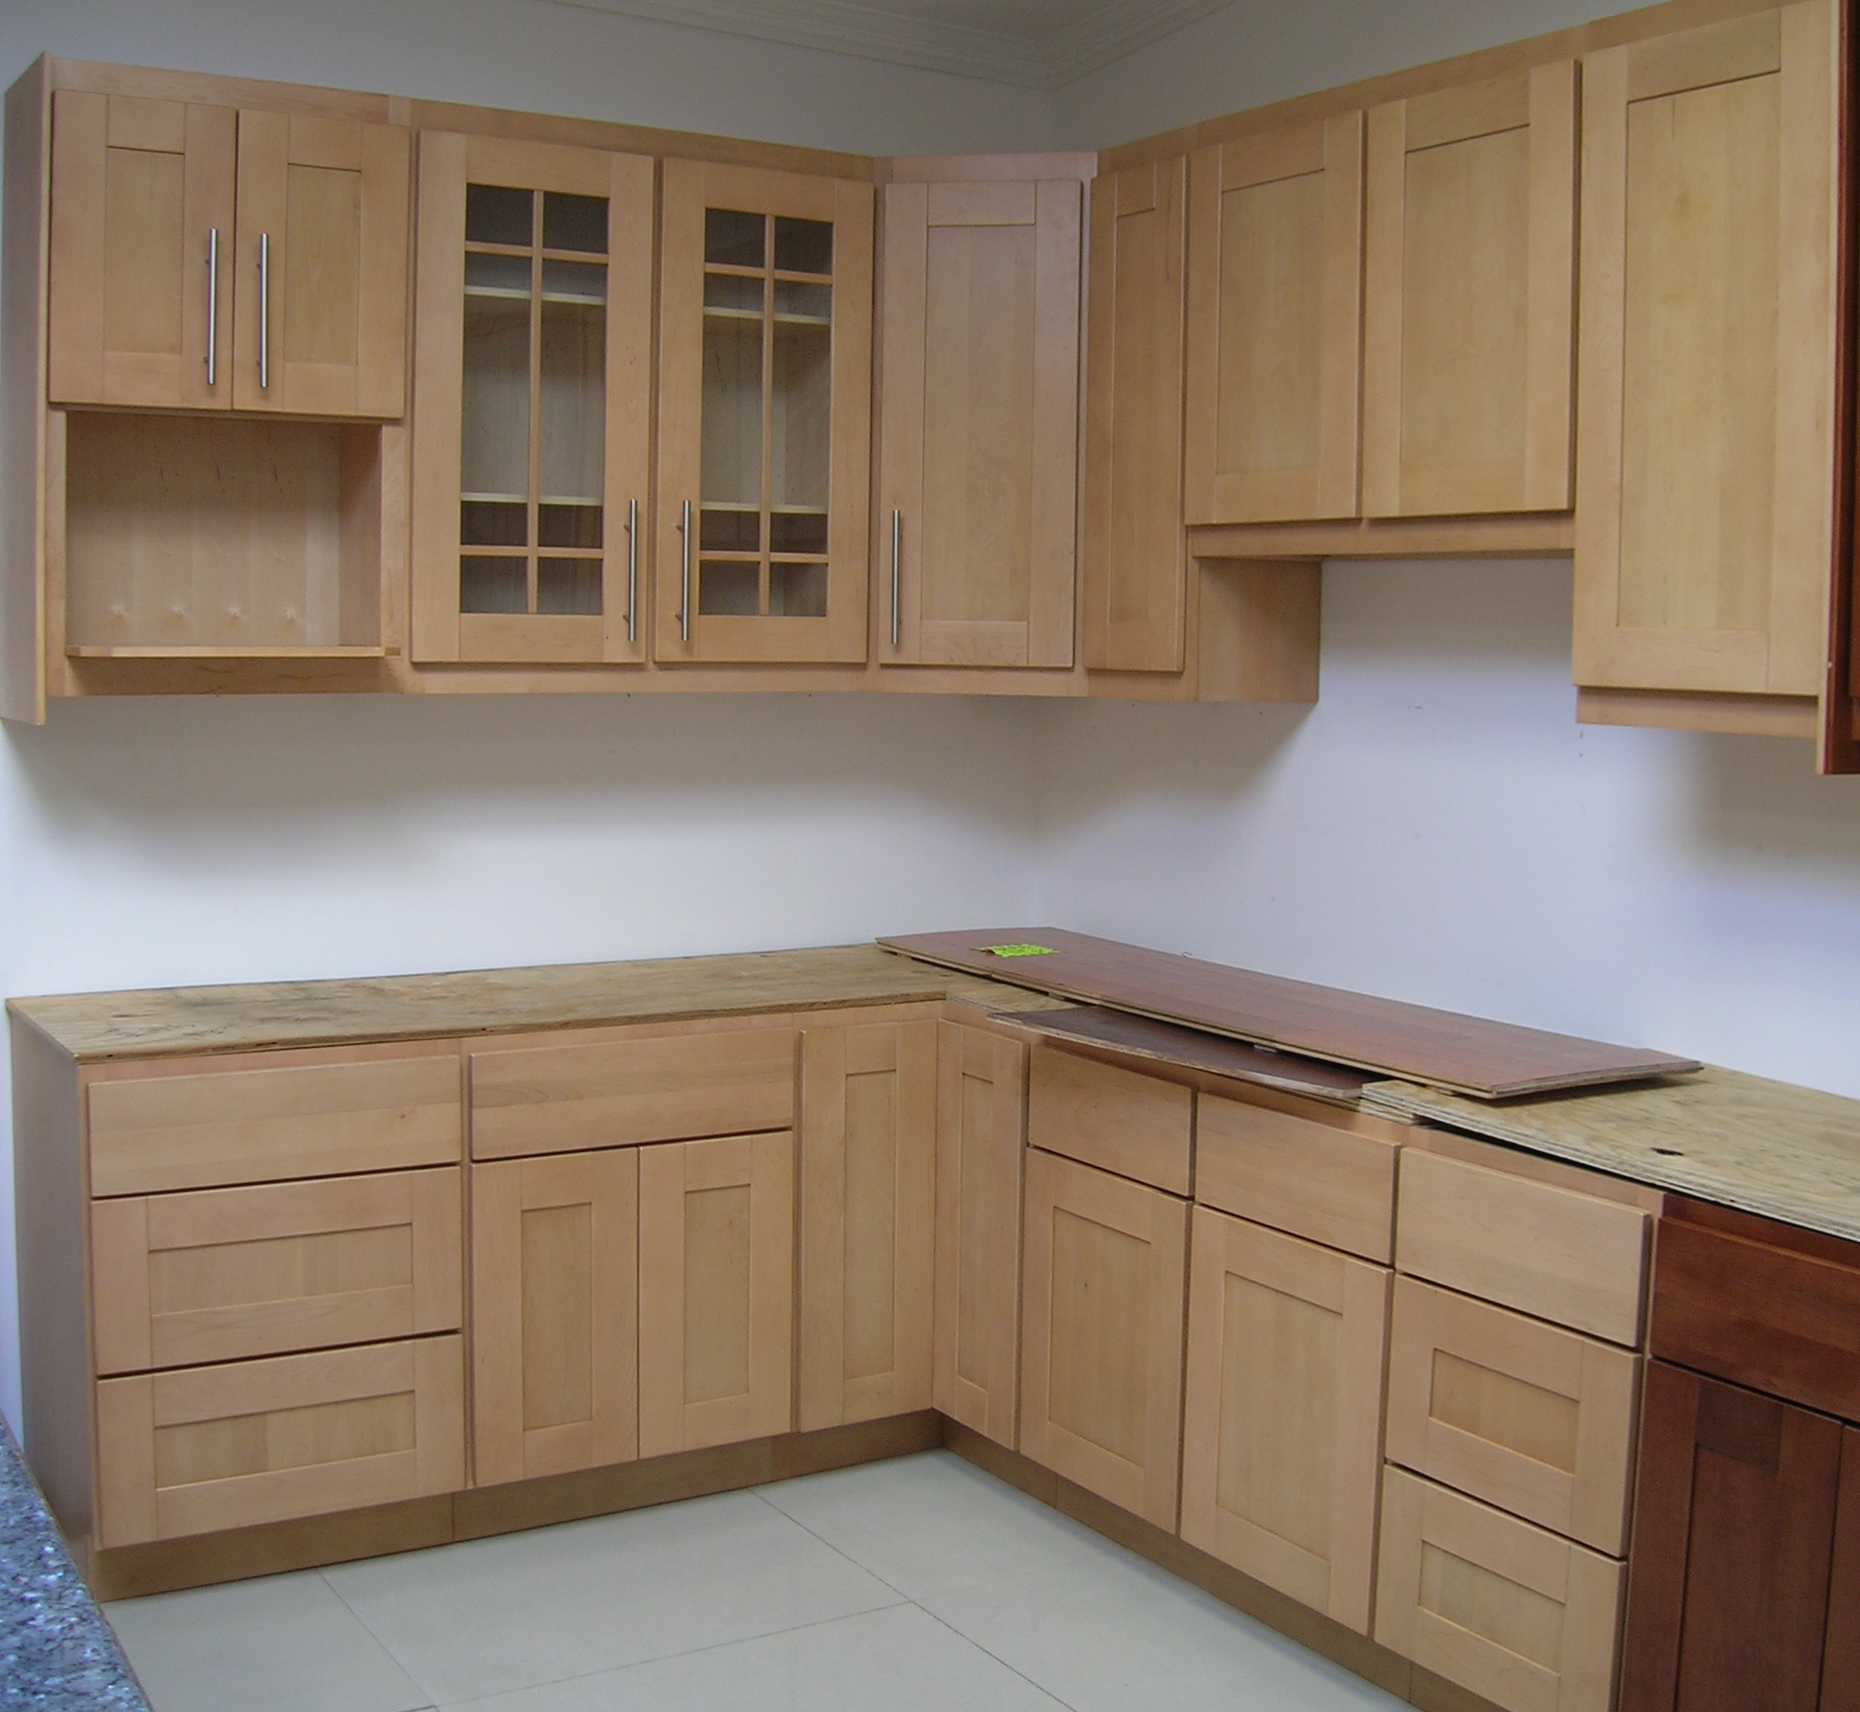 contemporary kitchen cabinets wholesale priced kitchen cabinets kitchen furniture kitchen furniture furniture